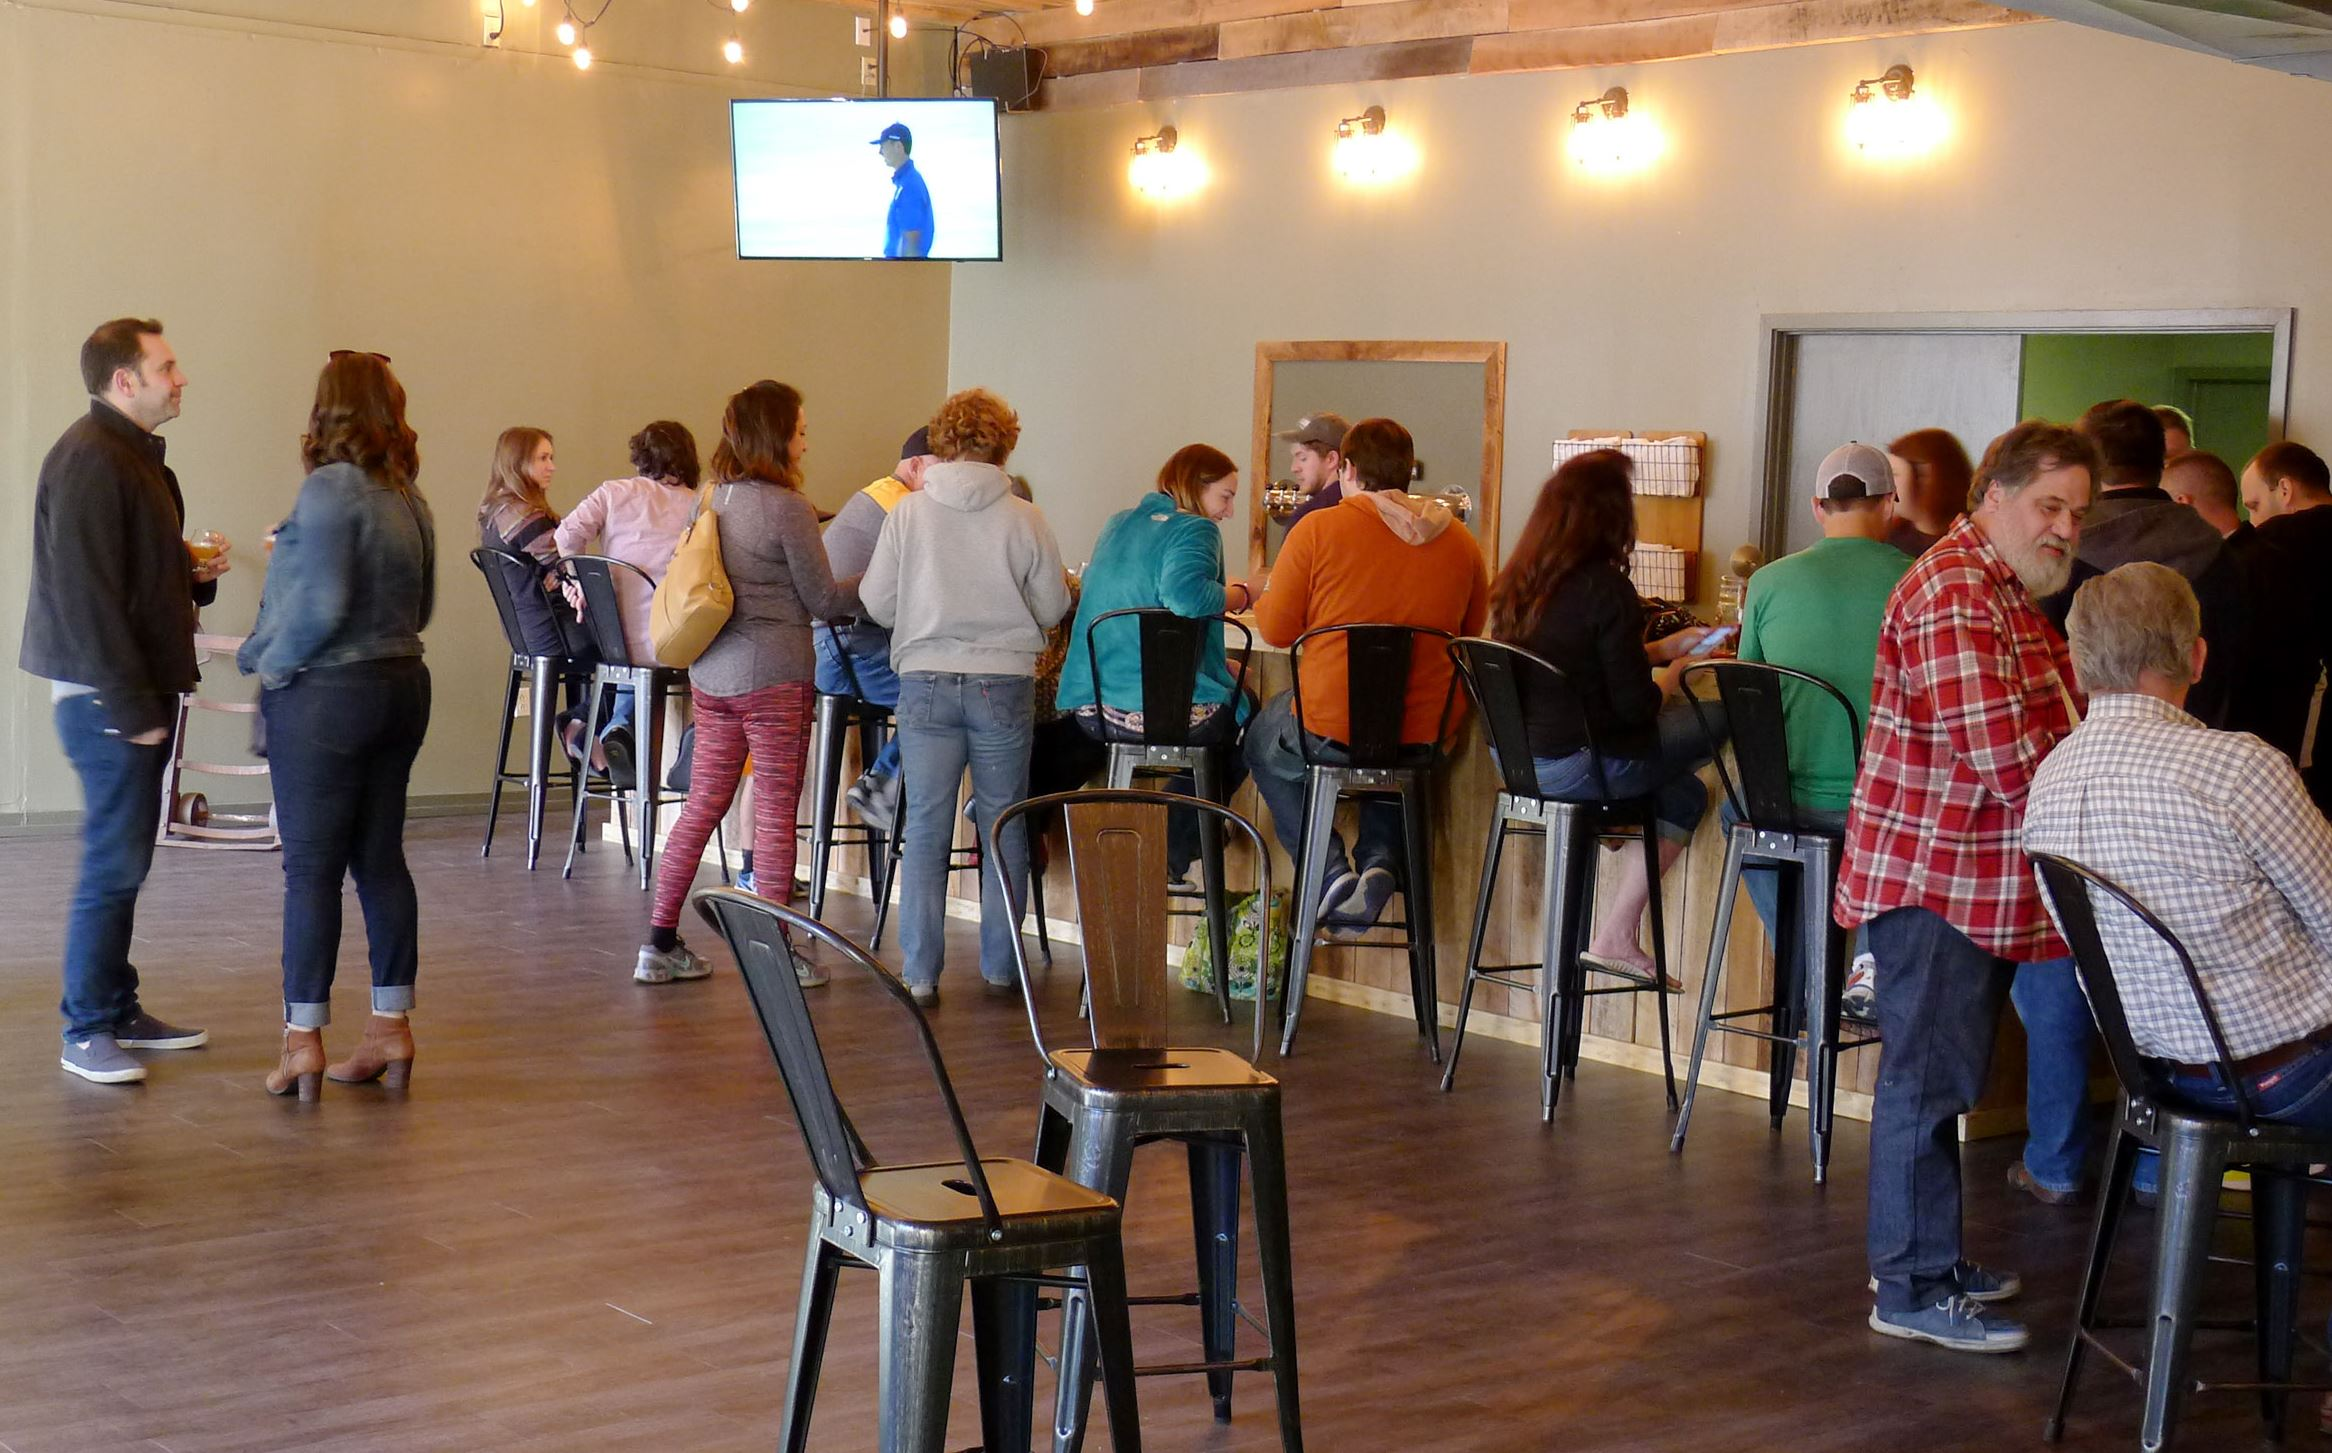 cobblehaus brewing company interior Cobblehaus Brewing Co. in Coraopolis will hold its grand opening on Friday, April 14.